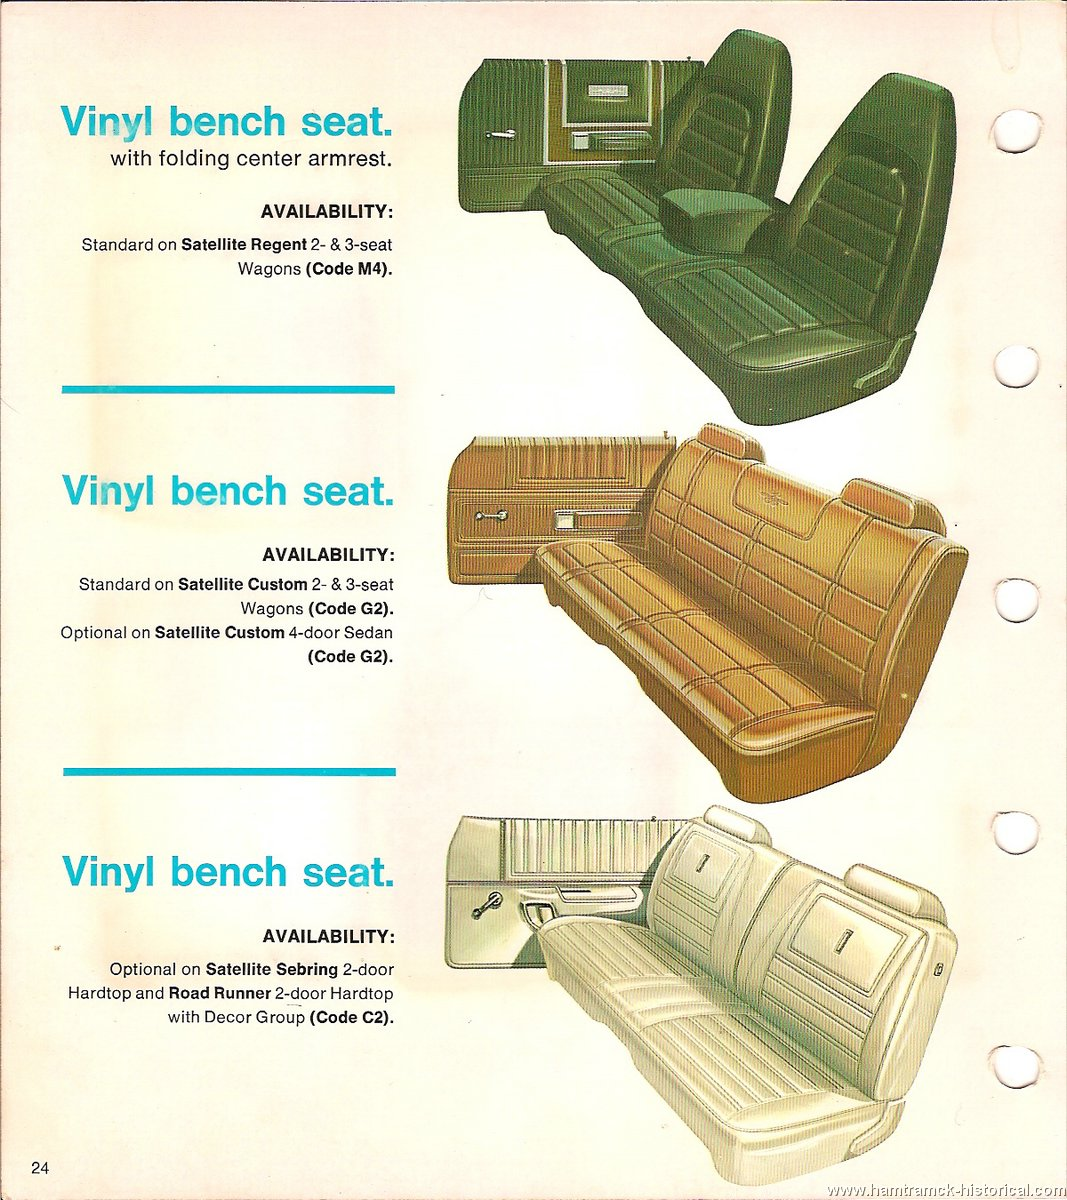 chair stool difference pico folding the between satellite and roadrunner upholstery